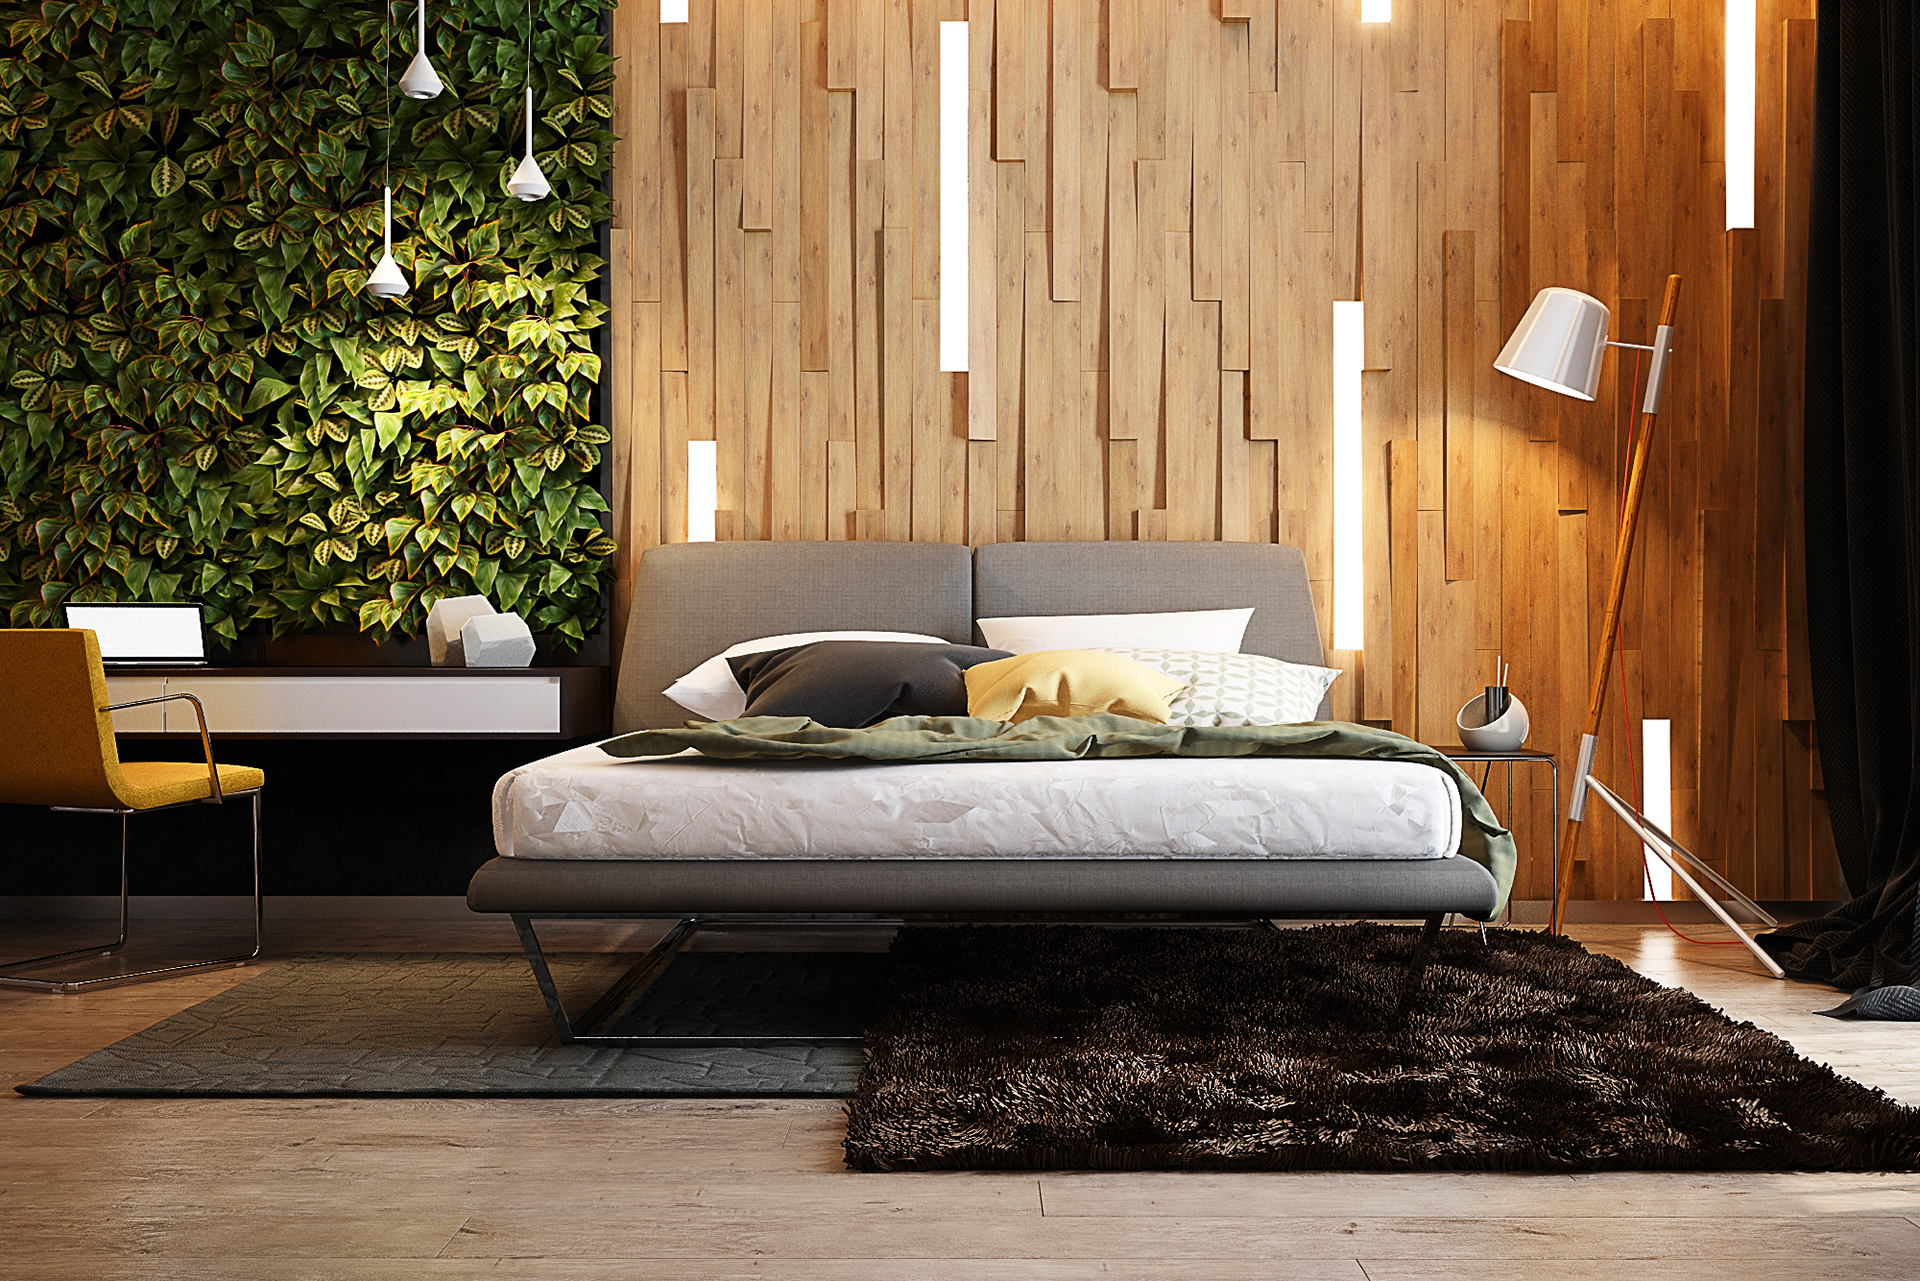 Bedroom in Tropical Style